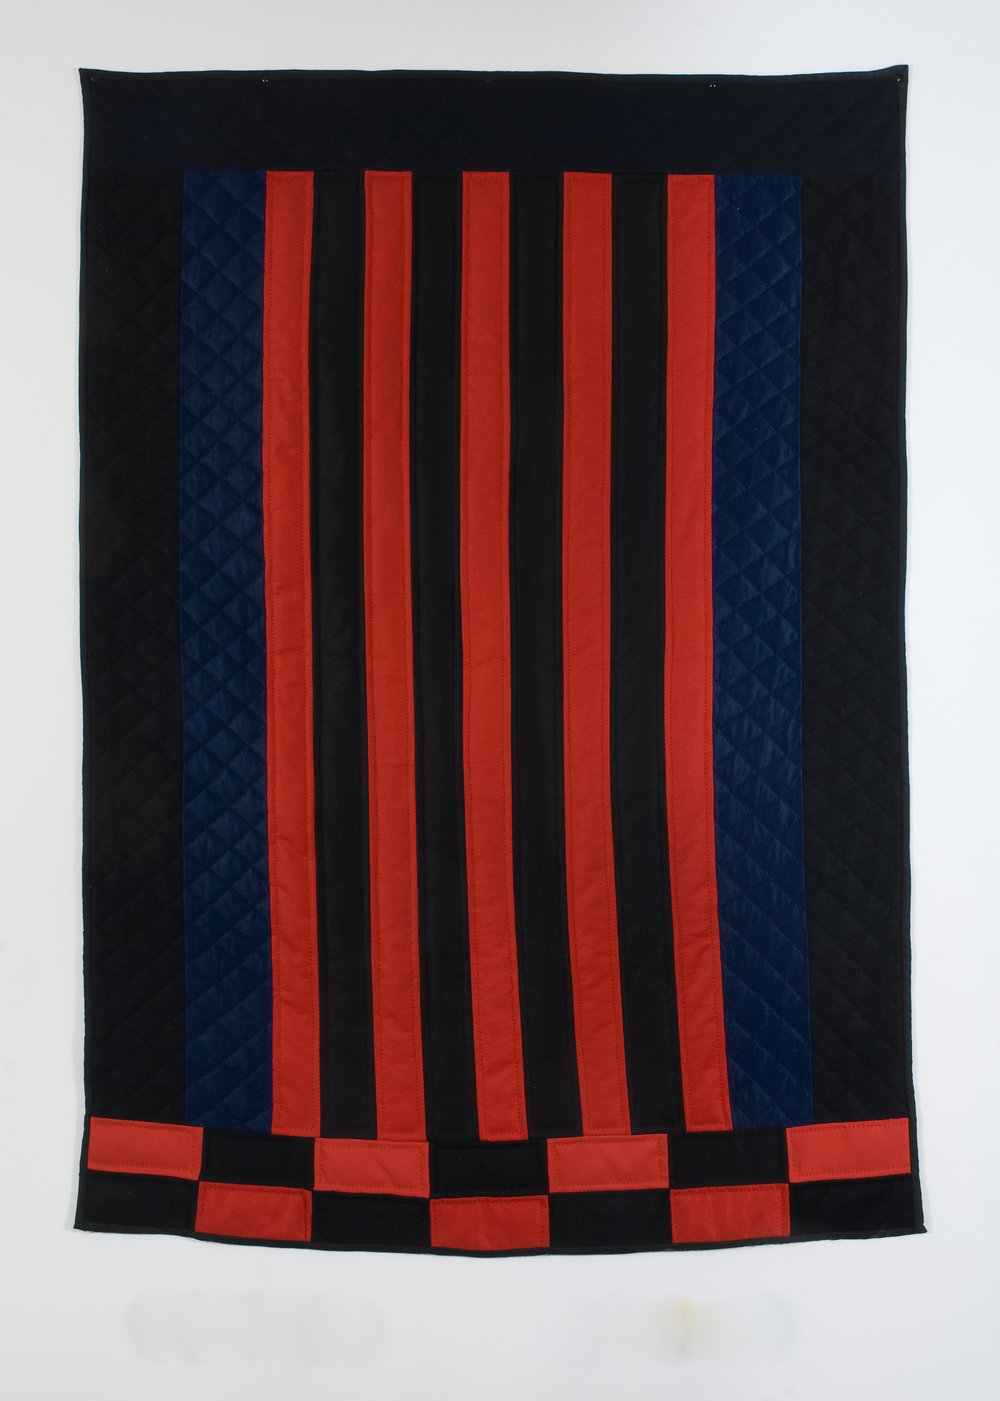 Bricks and Bars III, 2008 felted wool and cotton 180 x 129 cm - 70 7/8 x 50 3/4 inches